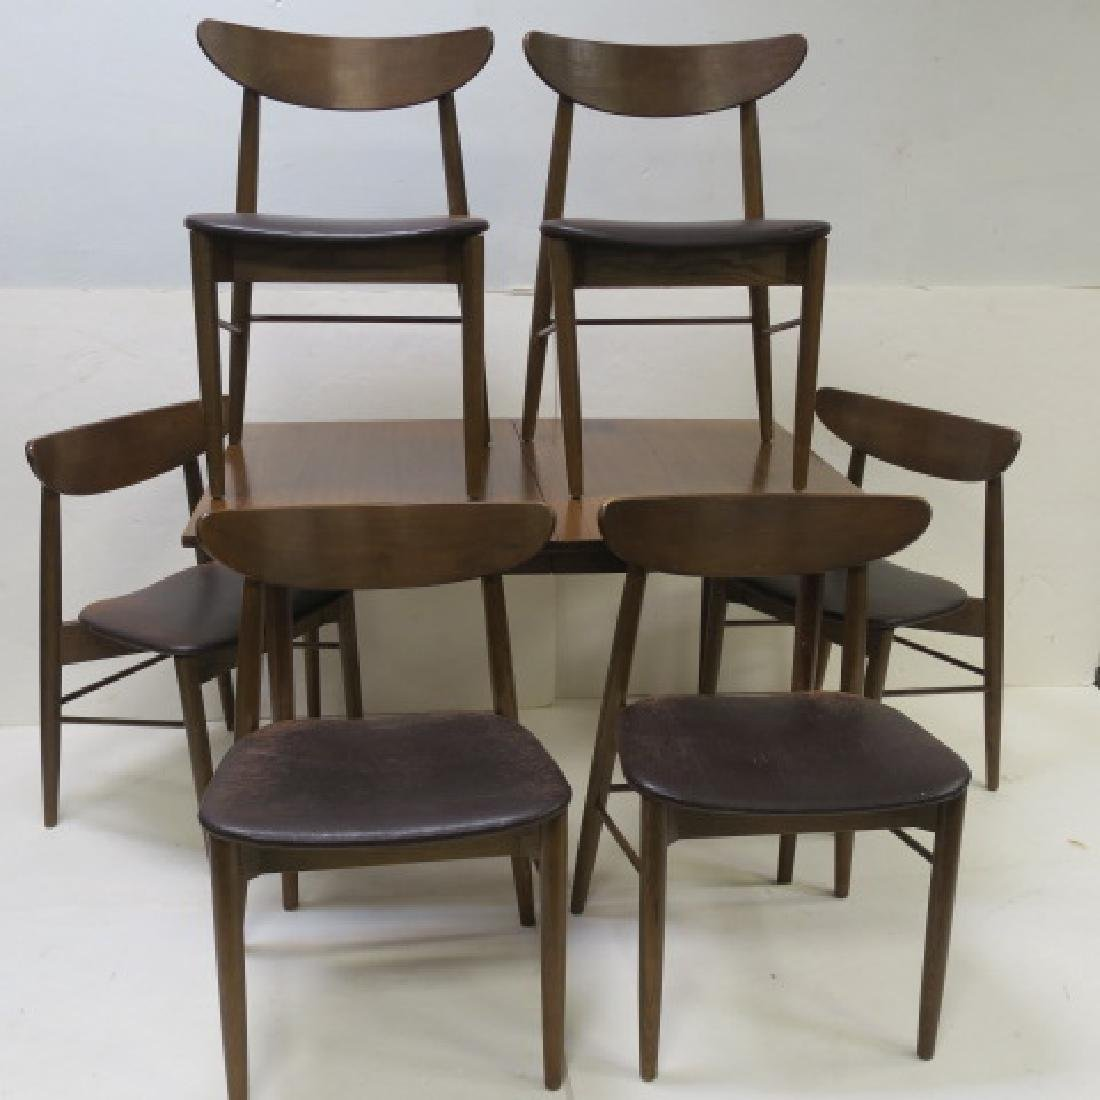 Mid-Century Modern 7 pc. Dining Set by STANLEY: